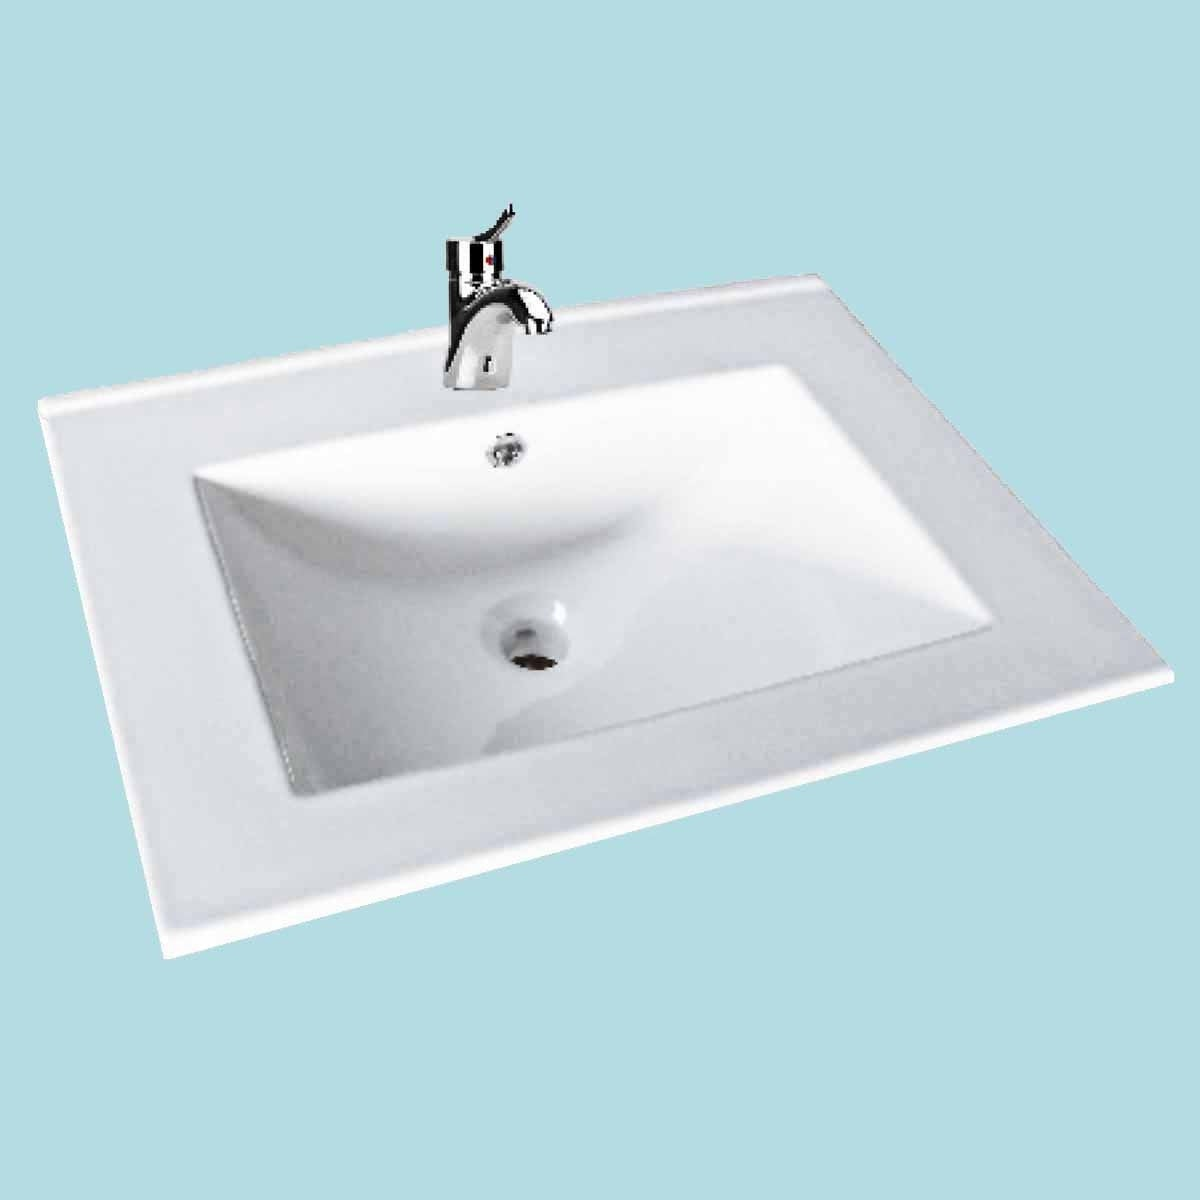 Shop Bathroom Drop-in Sink Square Self-Rimming White China ...